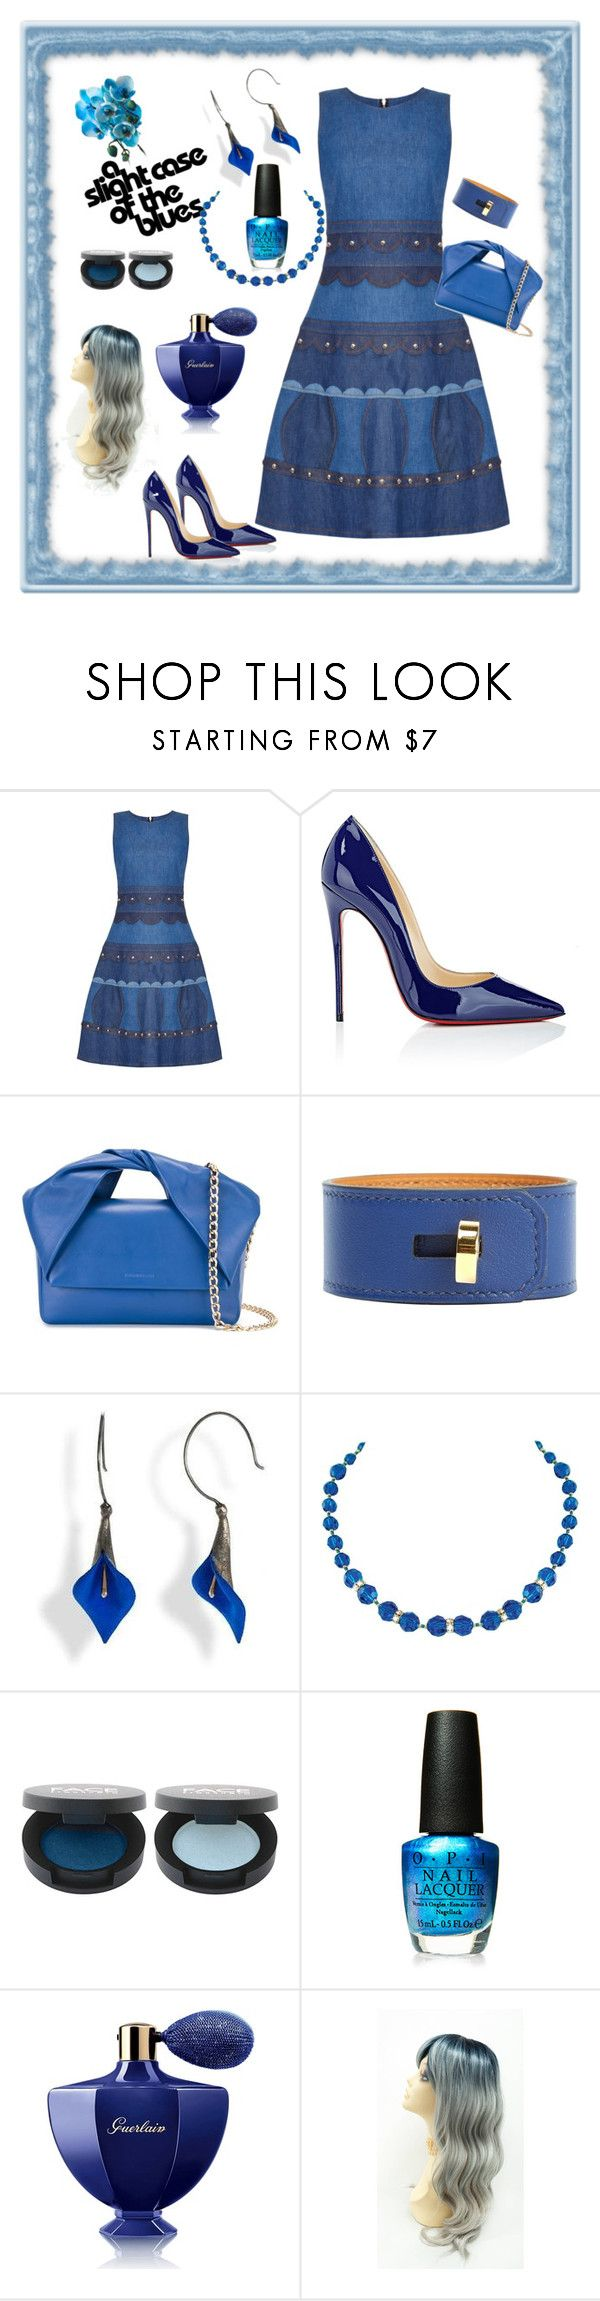 """""""The Blues"""" by jeanstapley ❤ liked on Polyvore featuring RED Valentino, Christian Louboutin, J.W. Anderson, Hermès, Capri Blue, OPI and Guerlain"""